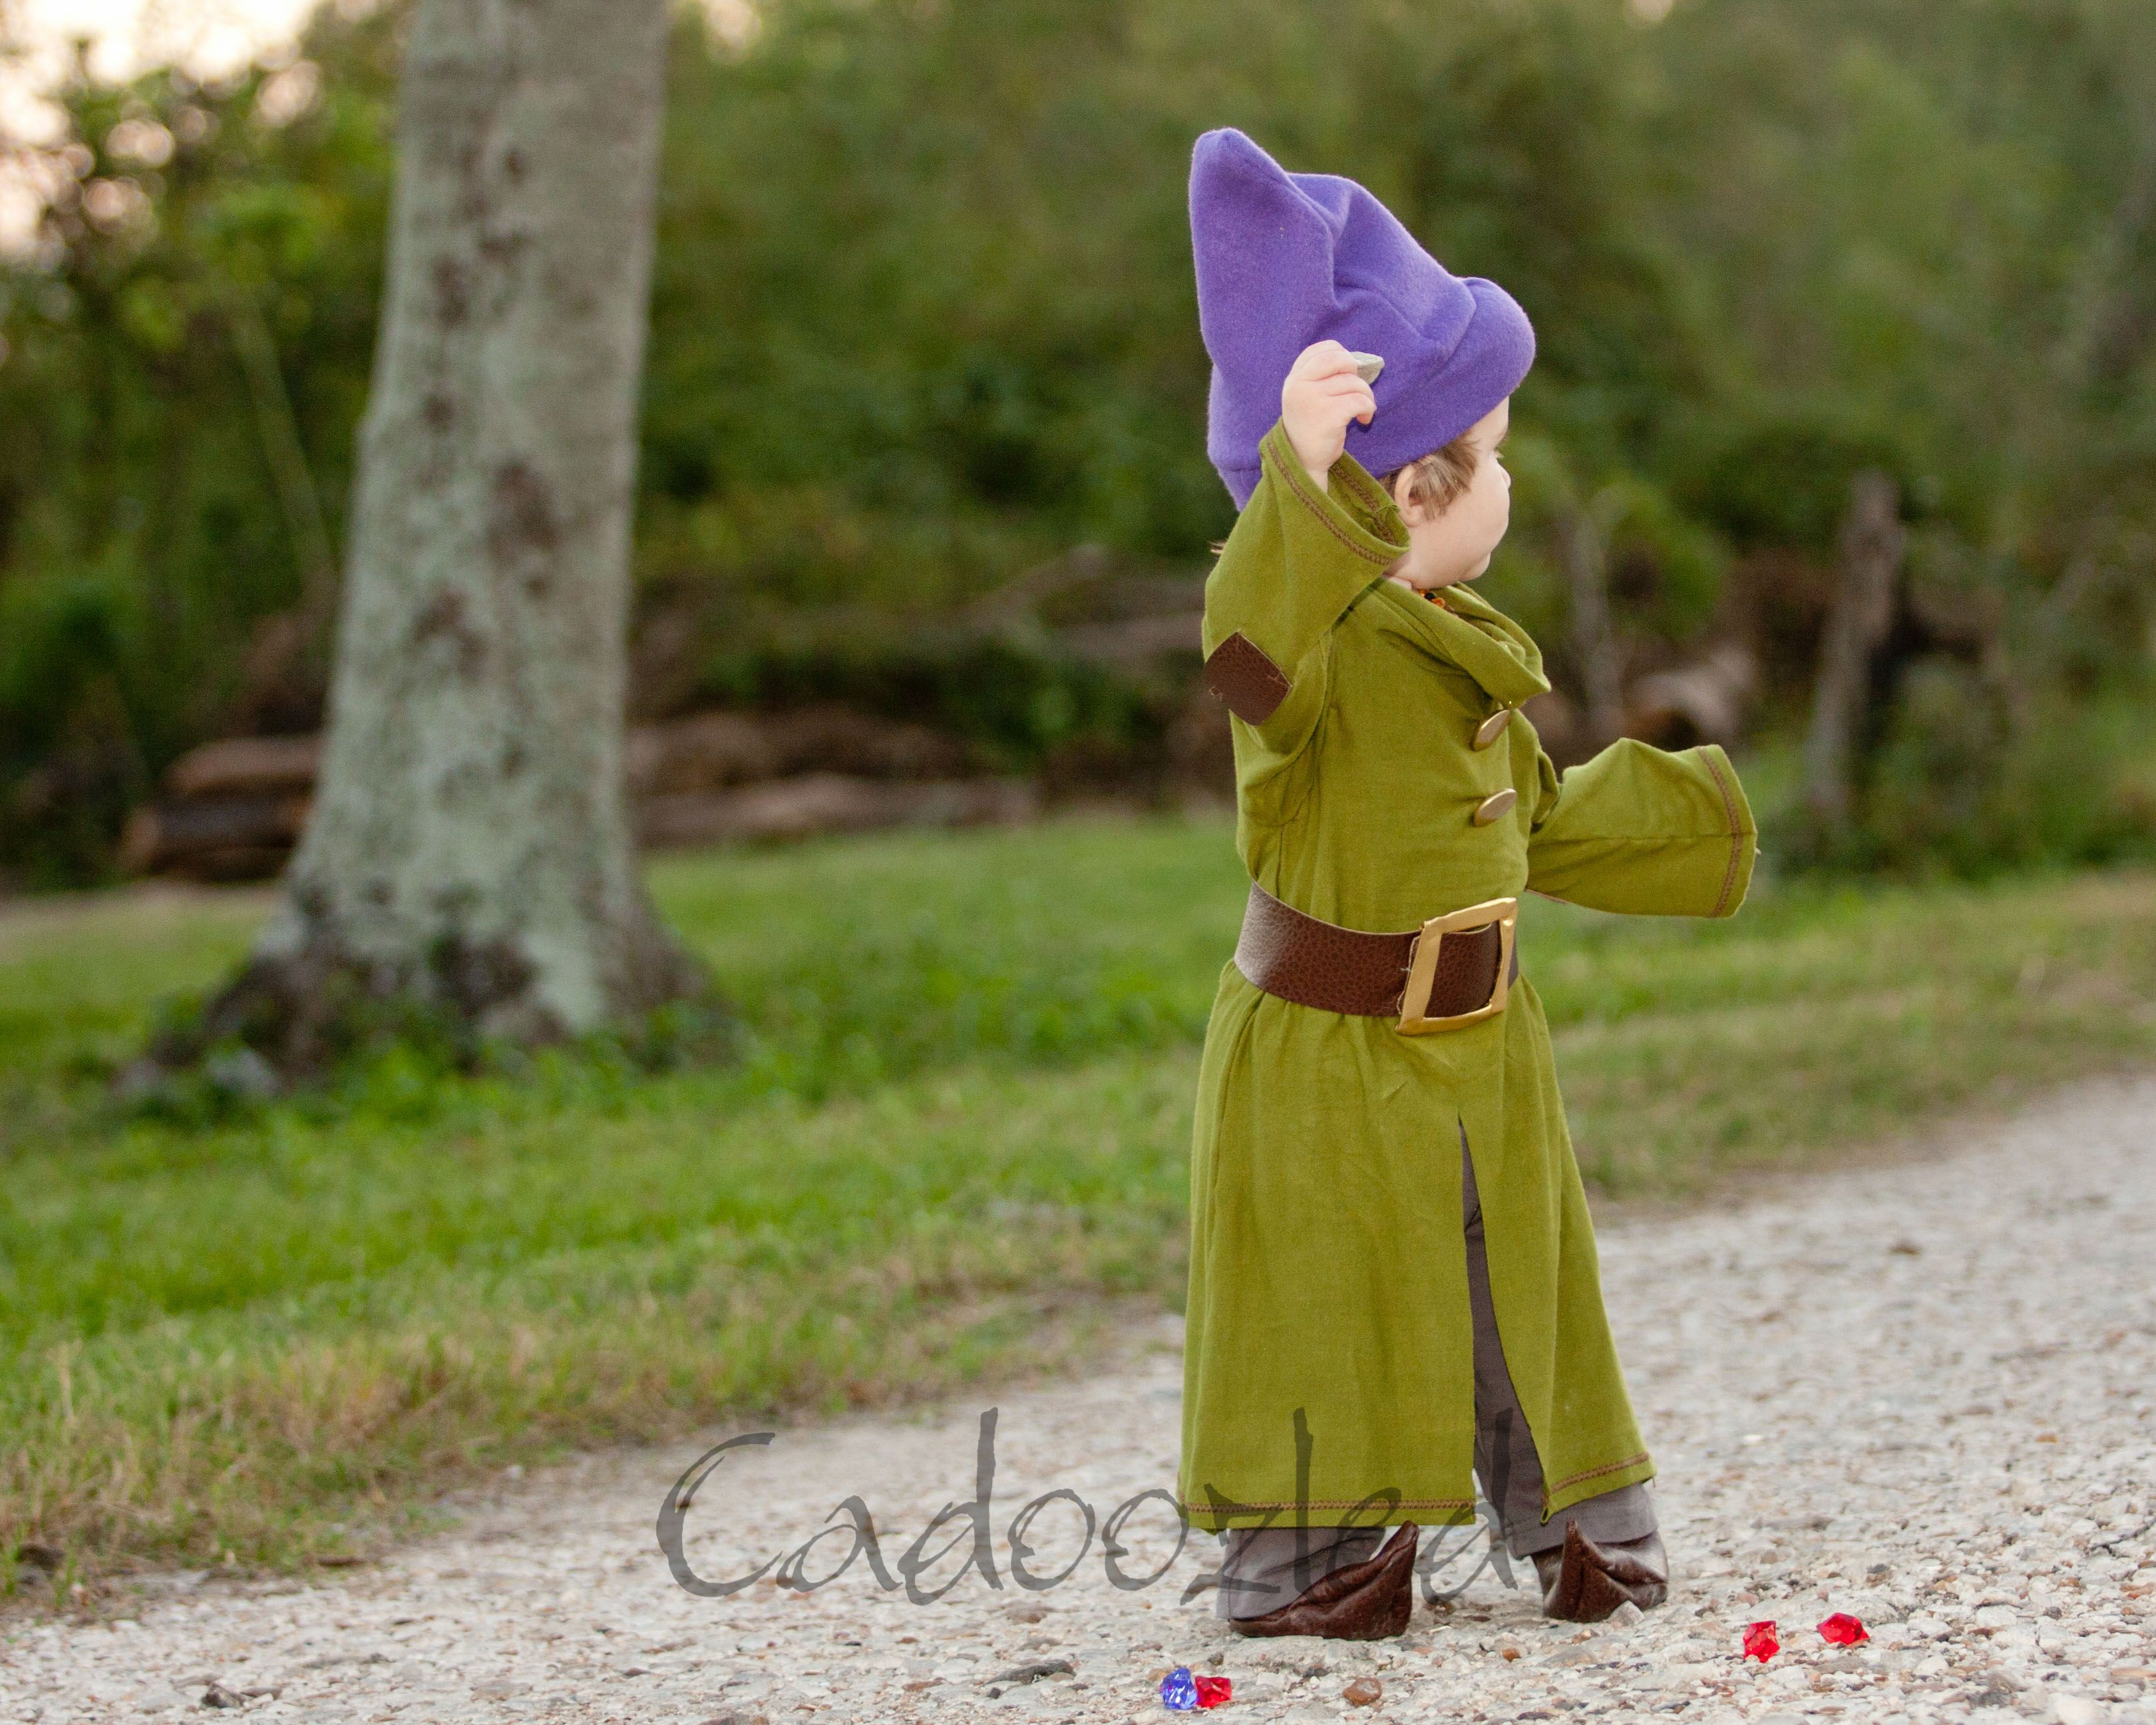 Dopey costume! Extremely cute for a little boy! Made by Cadoozled. . & Easy DIY Costume Dopey The Dwarf | Costumes | Pinterest | Easy diy ...